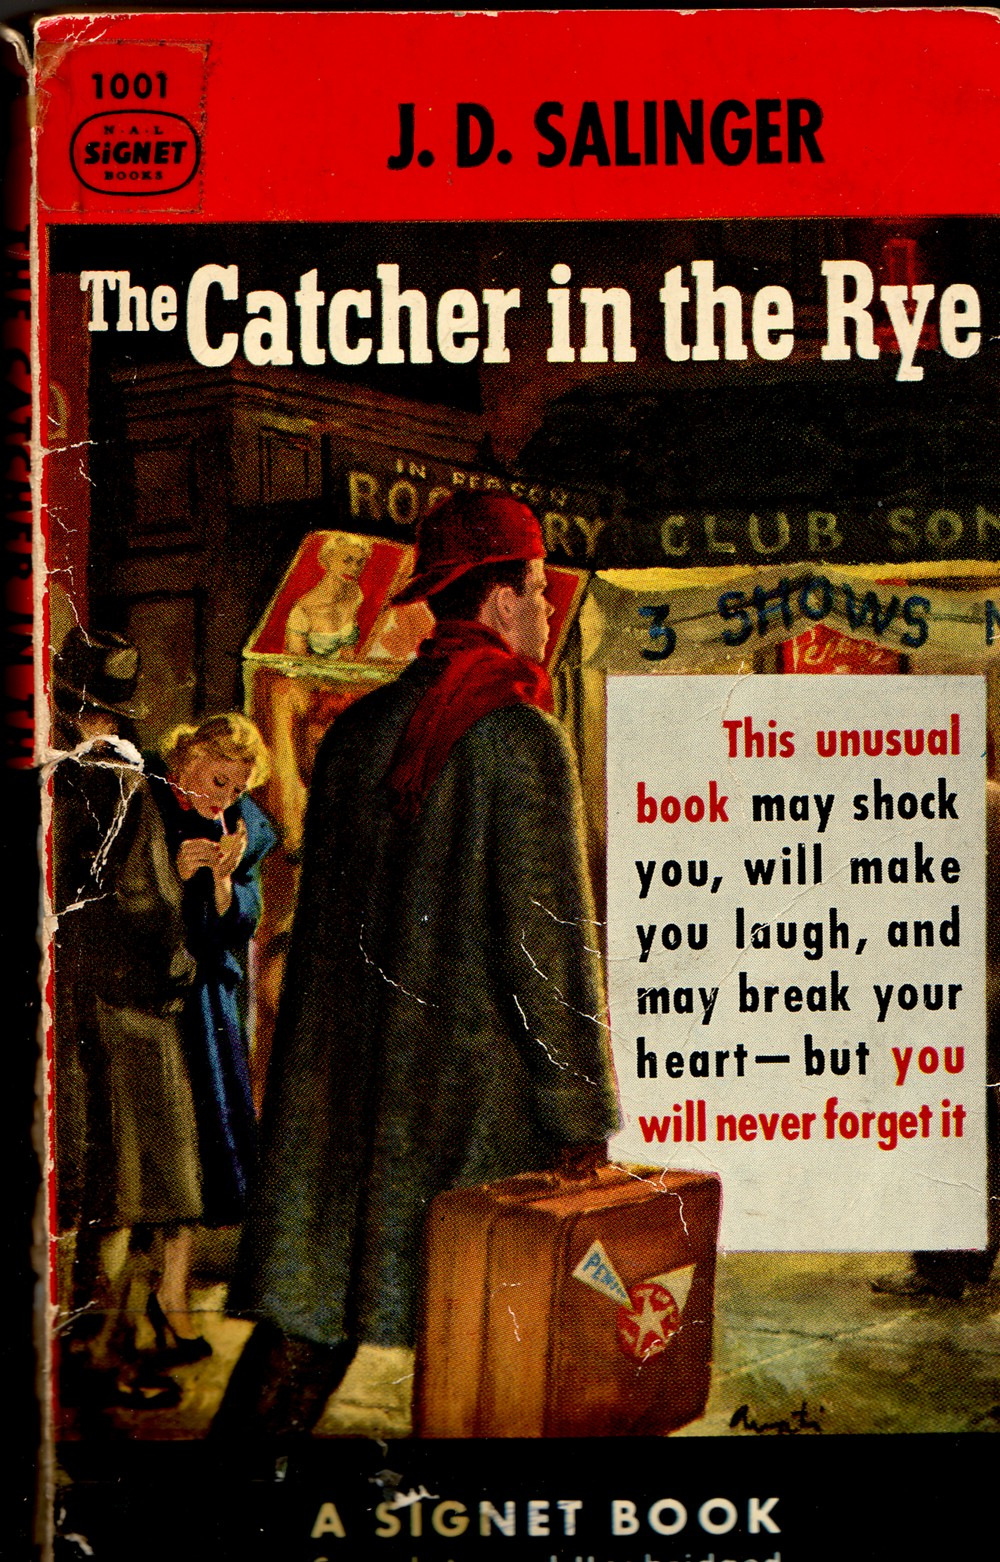 """The Cathcher ibn the Rye"" Signet book cover"